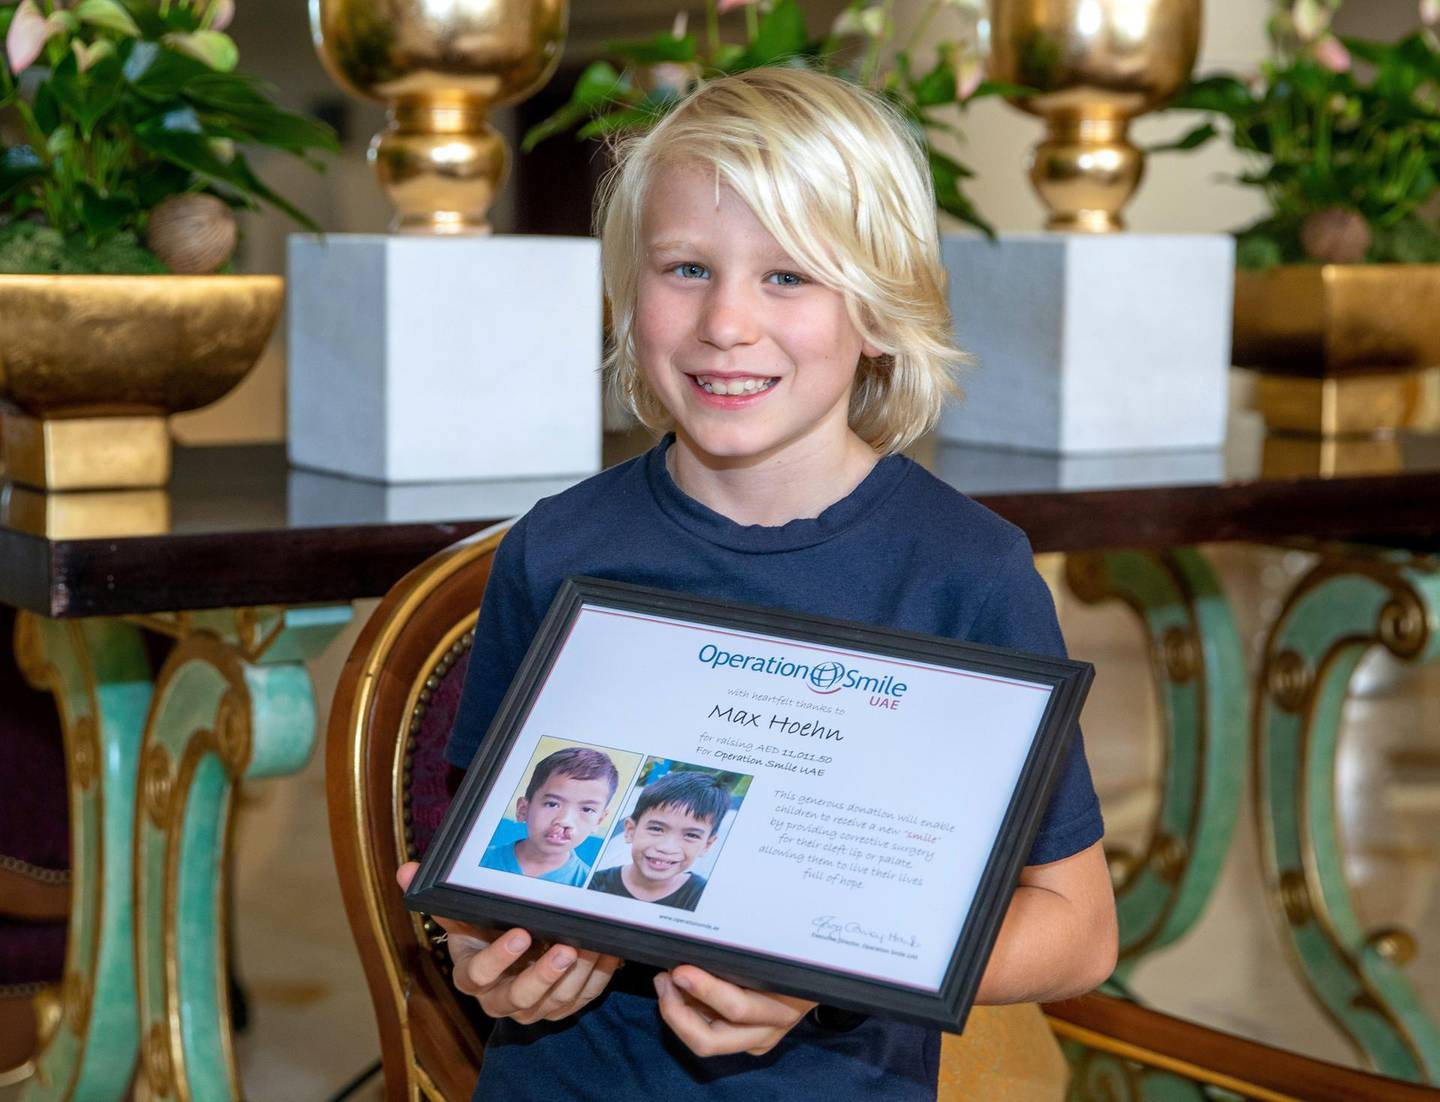 Abu Dhabi, United Arab Emirates, March 9, 2021.  Maximillian Hoehn 10 year old raises Dh11,000 for UAE charity, Operation Smile. Max with an appreciation plaque from Operation Smile UAE.Victor Besa/The NationalSection:  NAReporter:  Sarwat Nasir